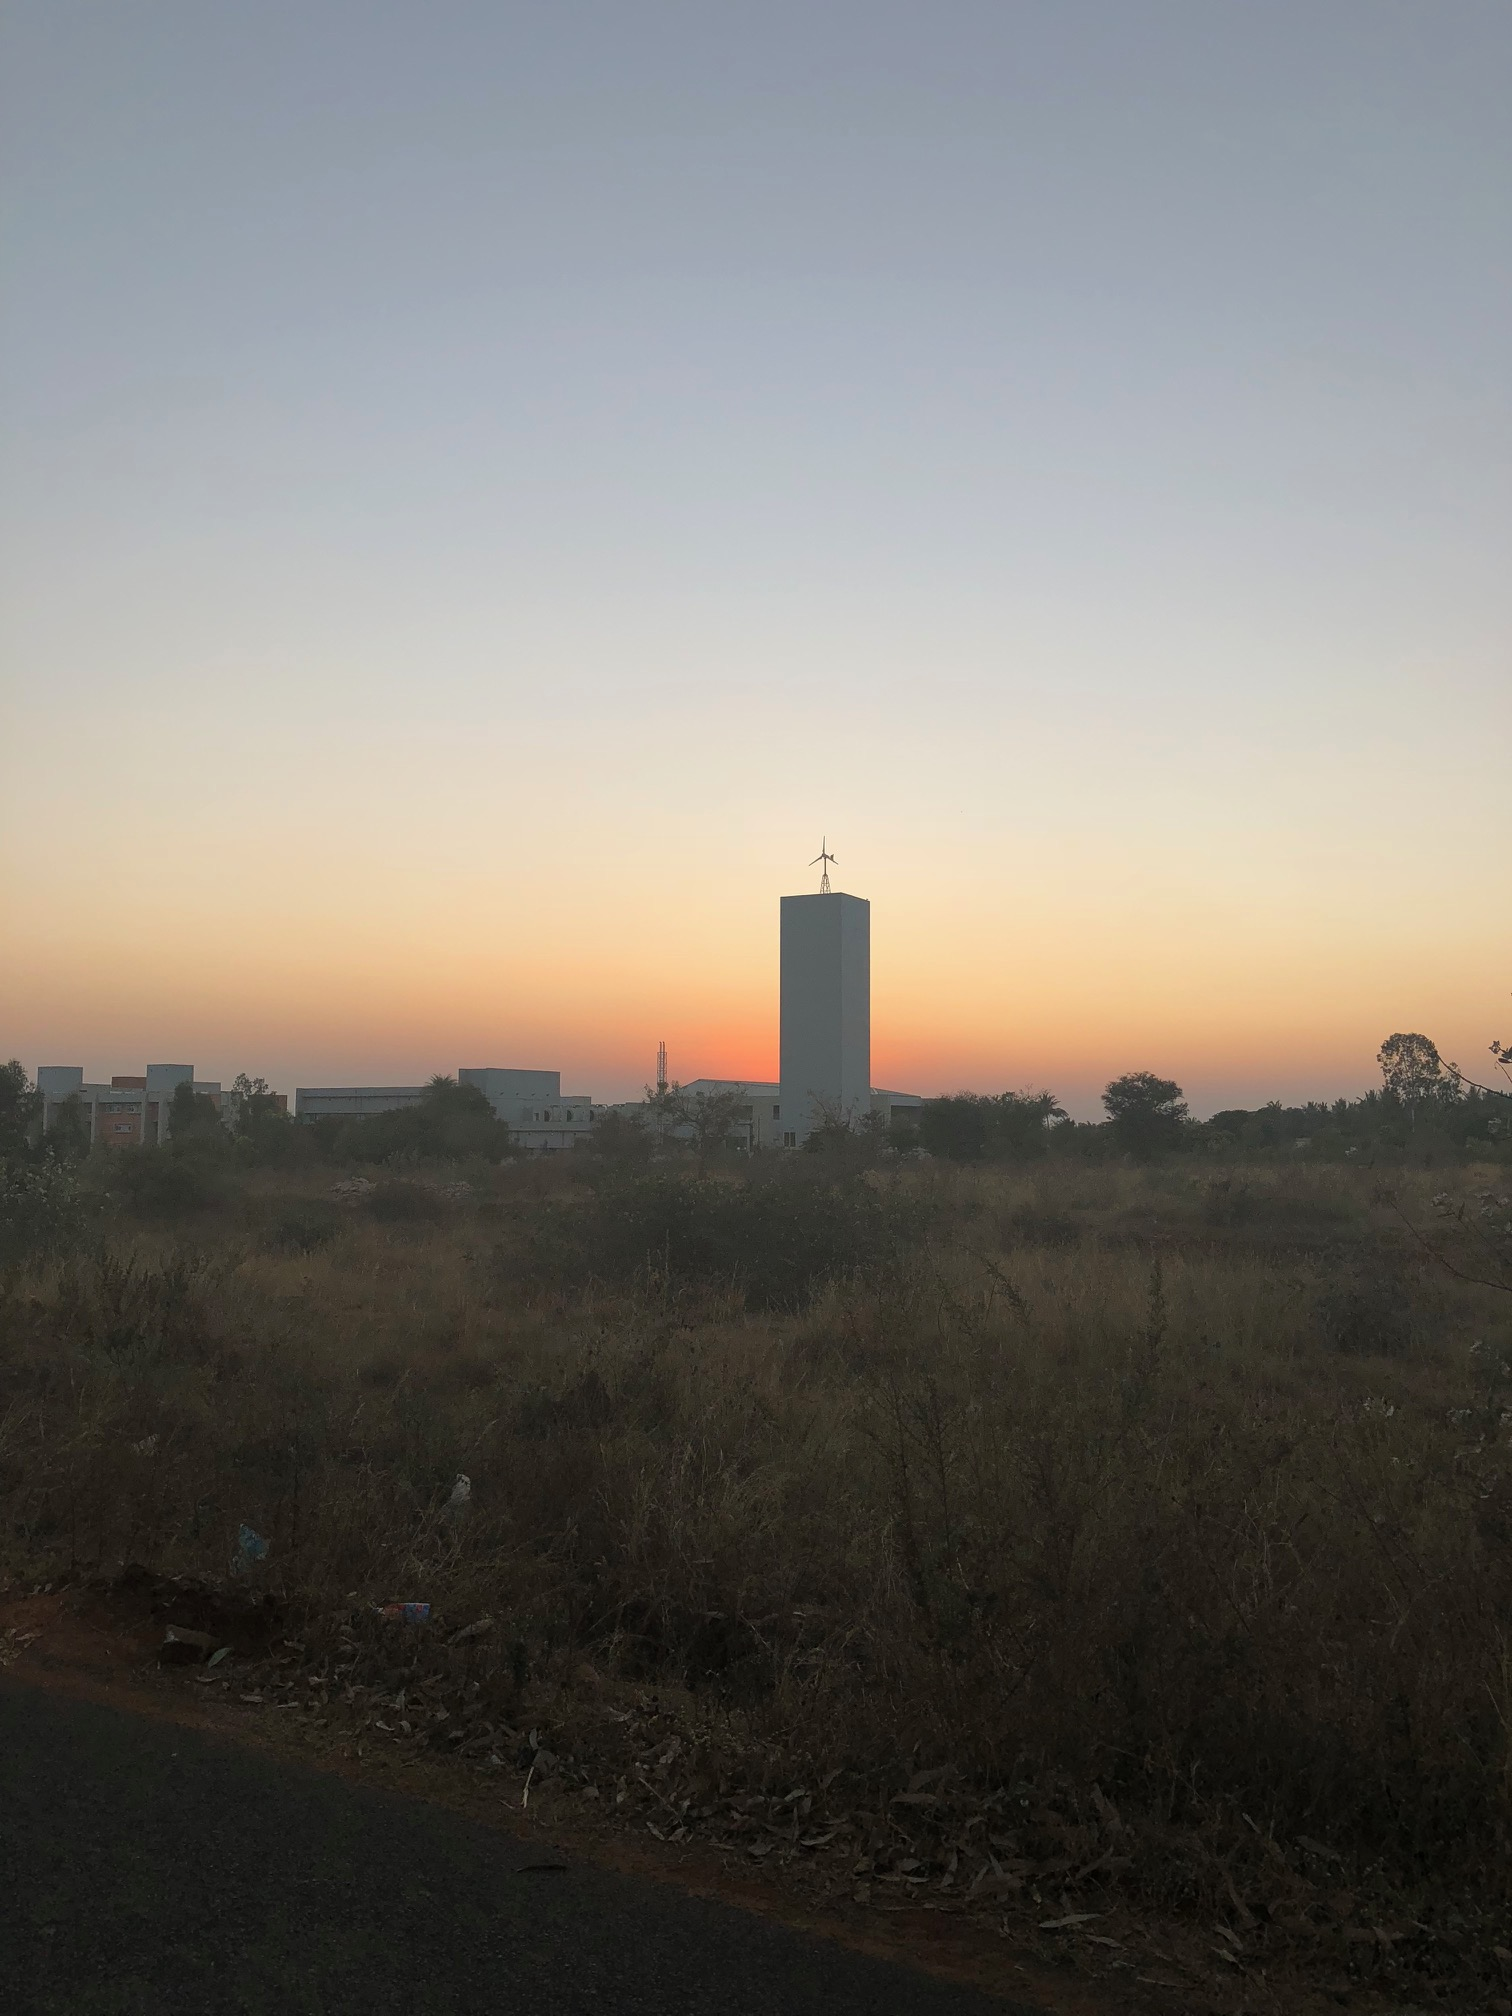 The sunset is blocked by a large, rectangular building that towers over a nearby adjacent campus.